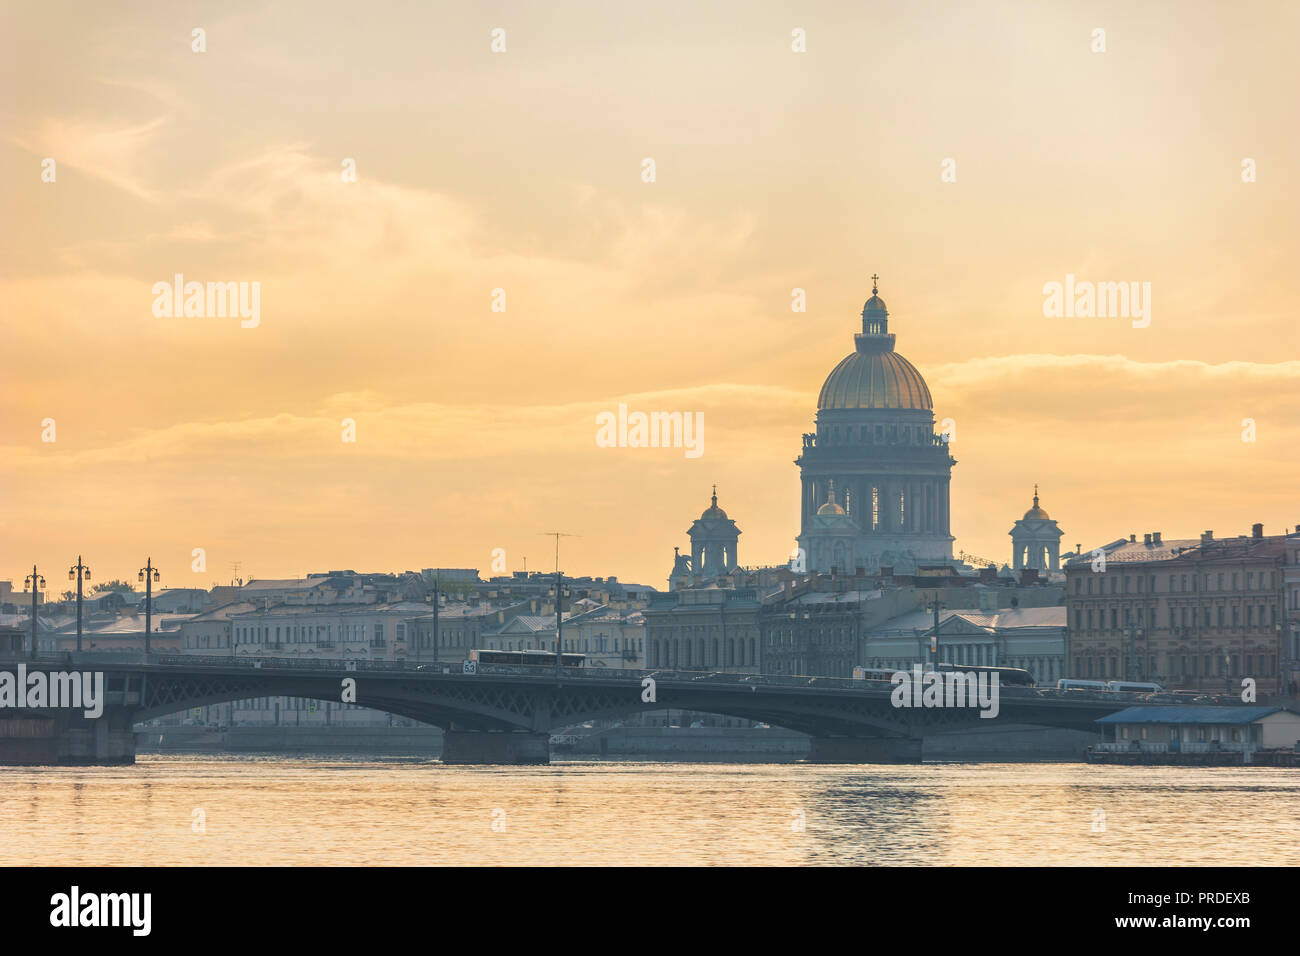 Saint Petersburg Russia, city skyline at Saint Isaac Cathedral - Stock Image